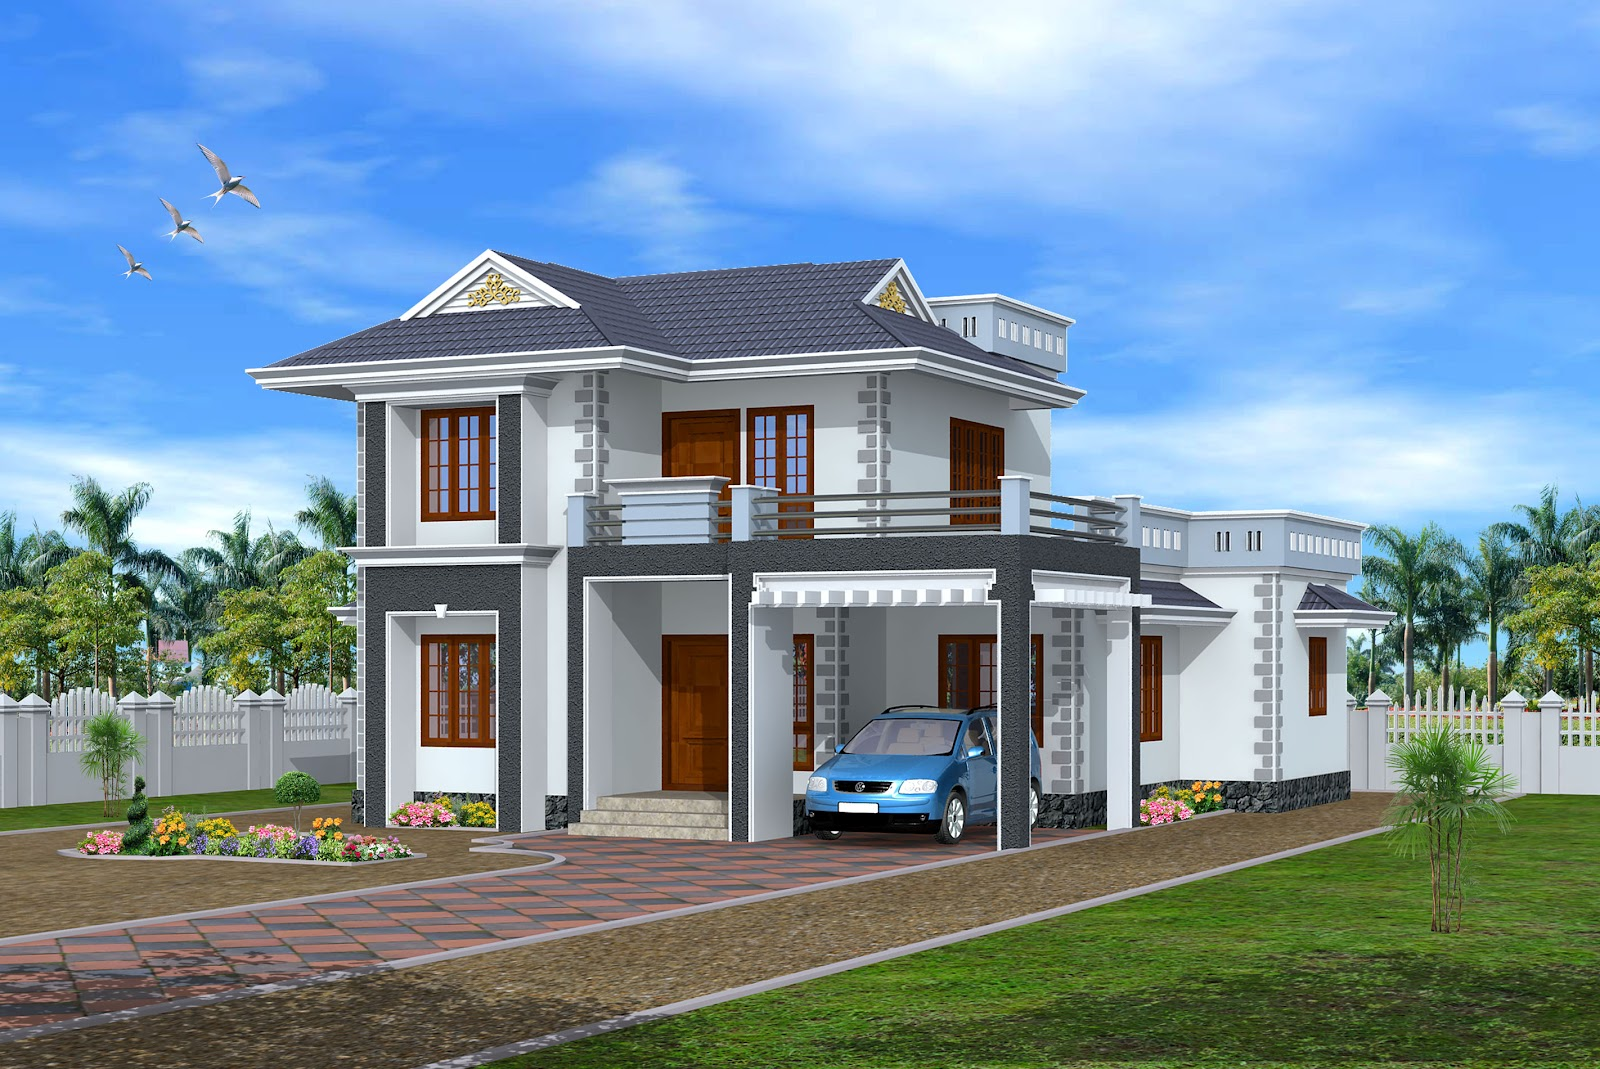 New home designs latest modern homes exterior designs views for House model design photos